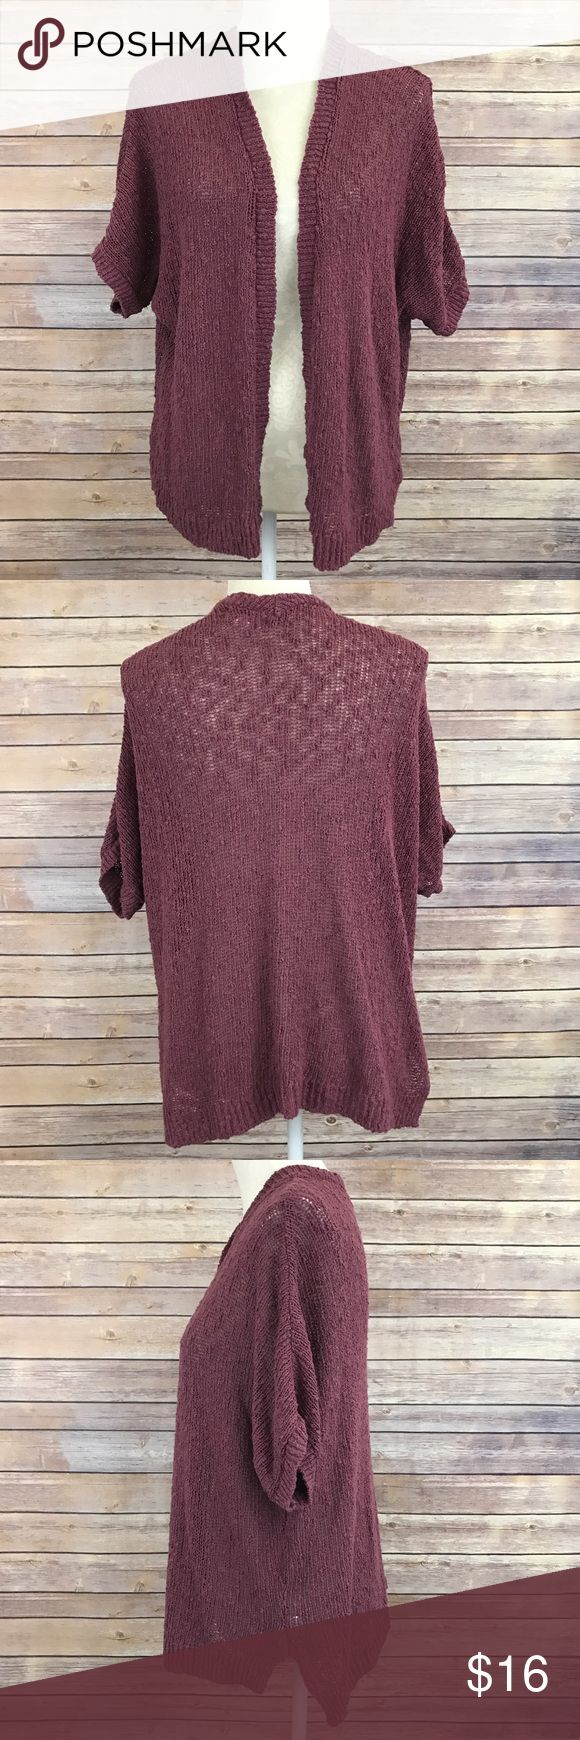 """Sun & Shadow Maroon Open Knit Shawl Cardigan XS E1 Bust: 26"""" Length: 25""""  Condition: No Rips; No Stains  70% Cotton 30% Acrylic   📦I ship orders within 24 Hours! {Except Weekends}📦  🚫No Trades🚫No Holds🚫 Sun & Shadow Sweaters Cardigans"""